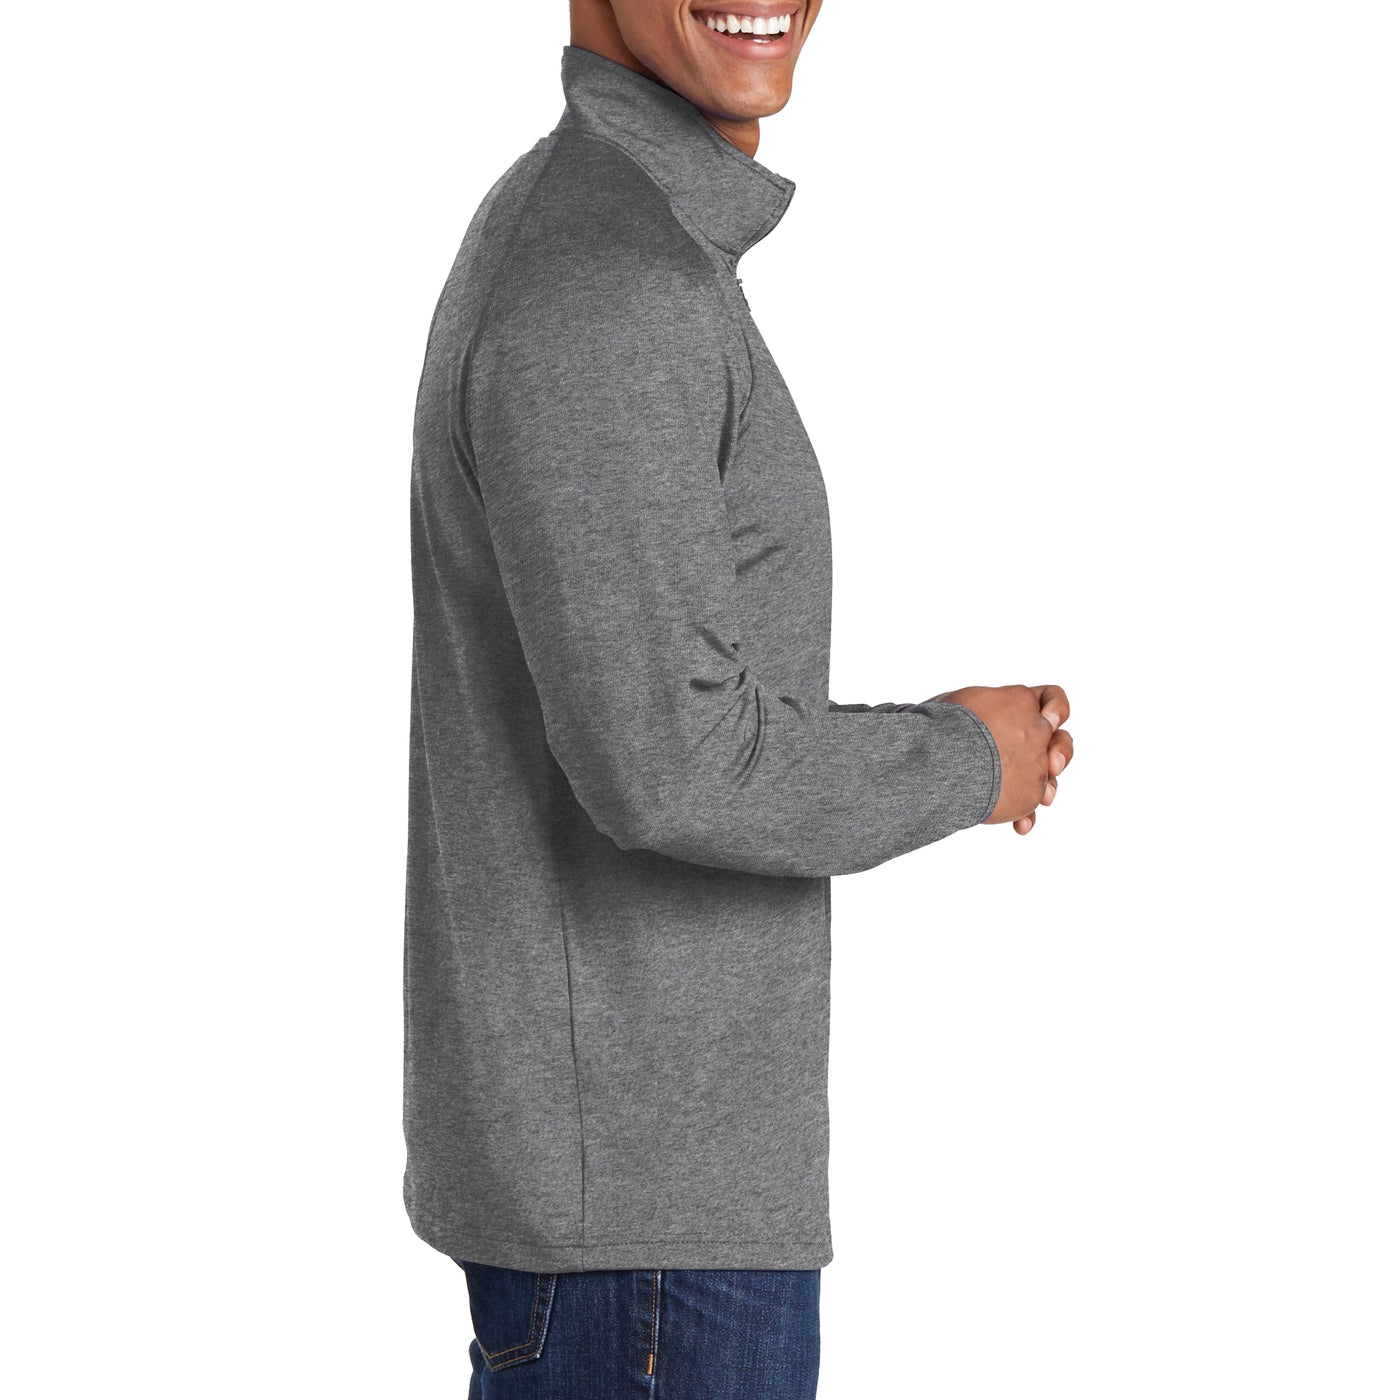 Men's Stretch 1/2 Zip Pullover - Charcoal Grey Heather